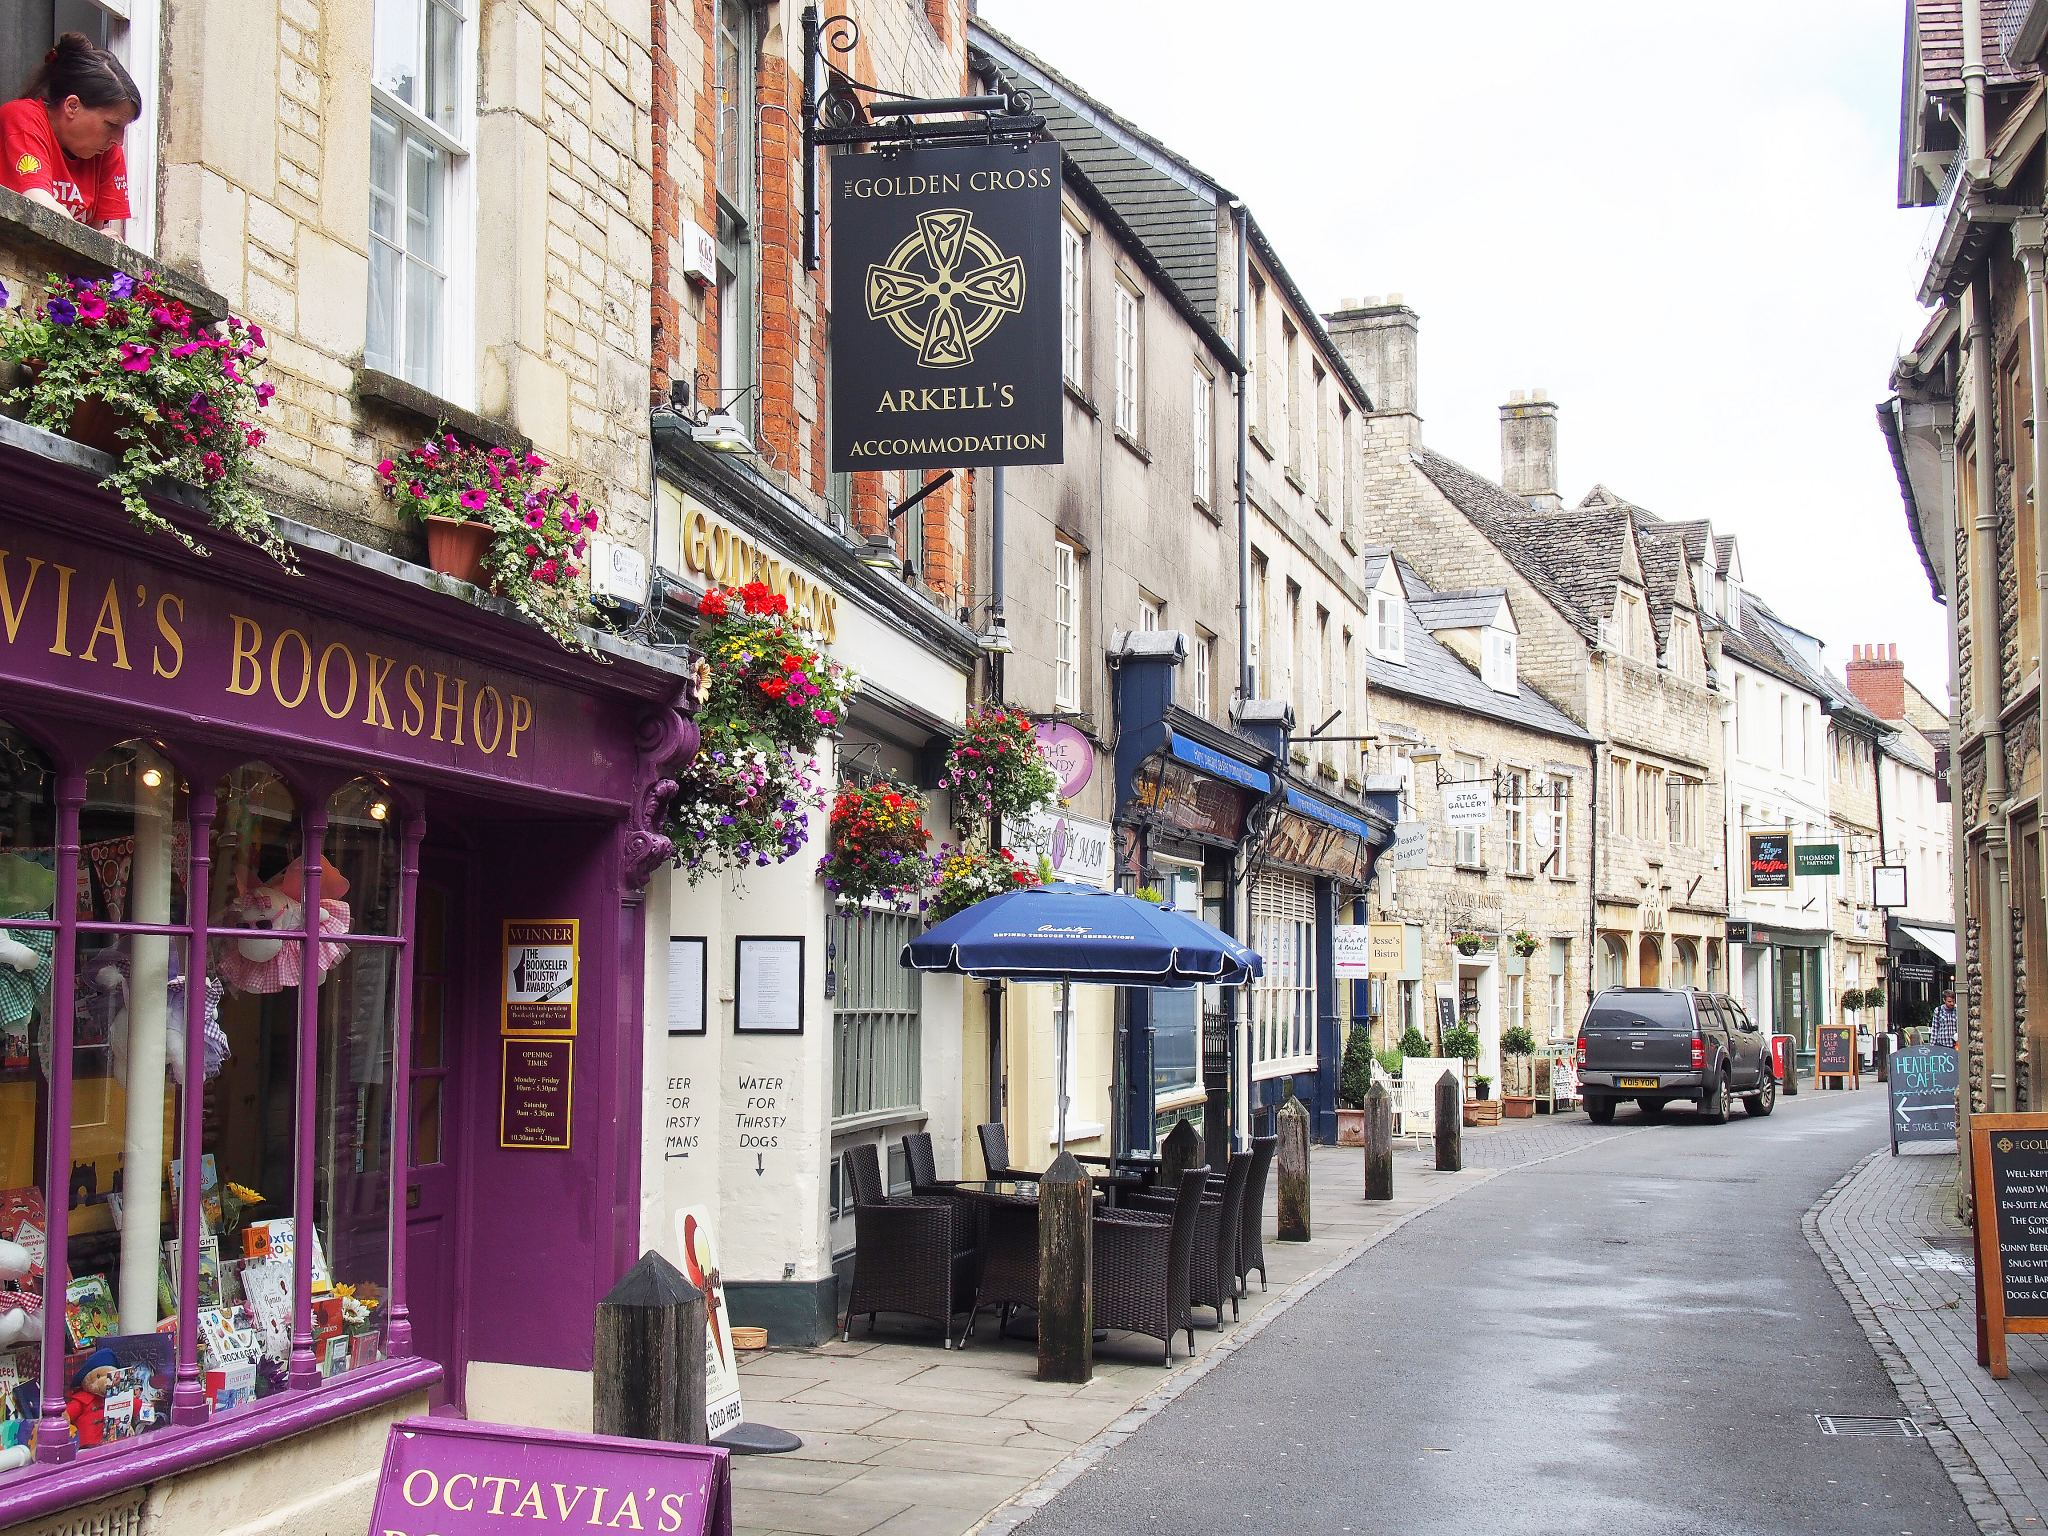 Staycation in Cirencester